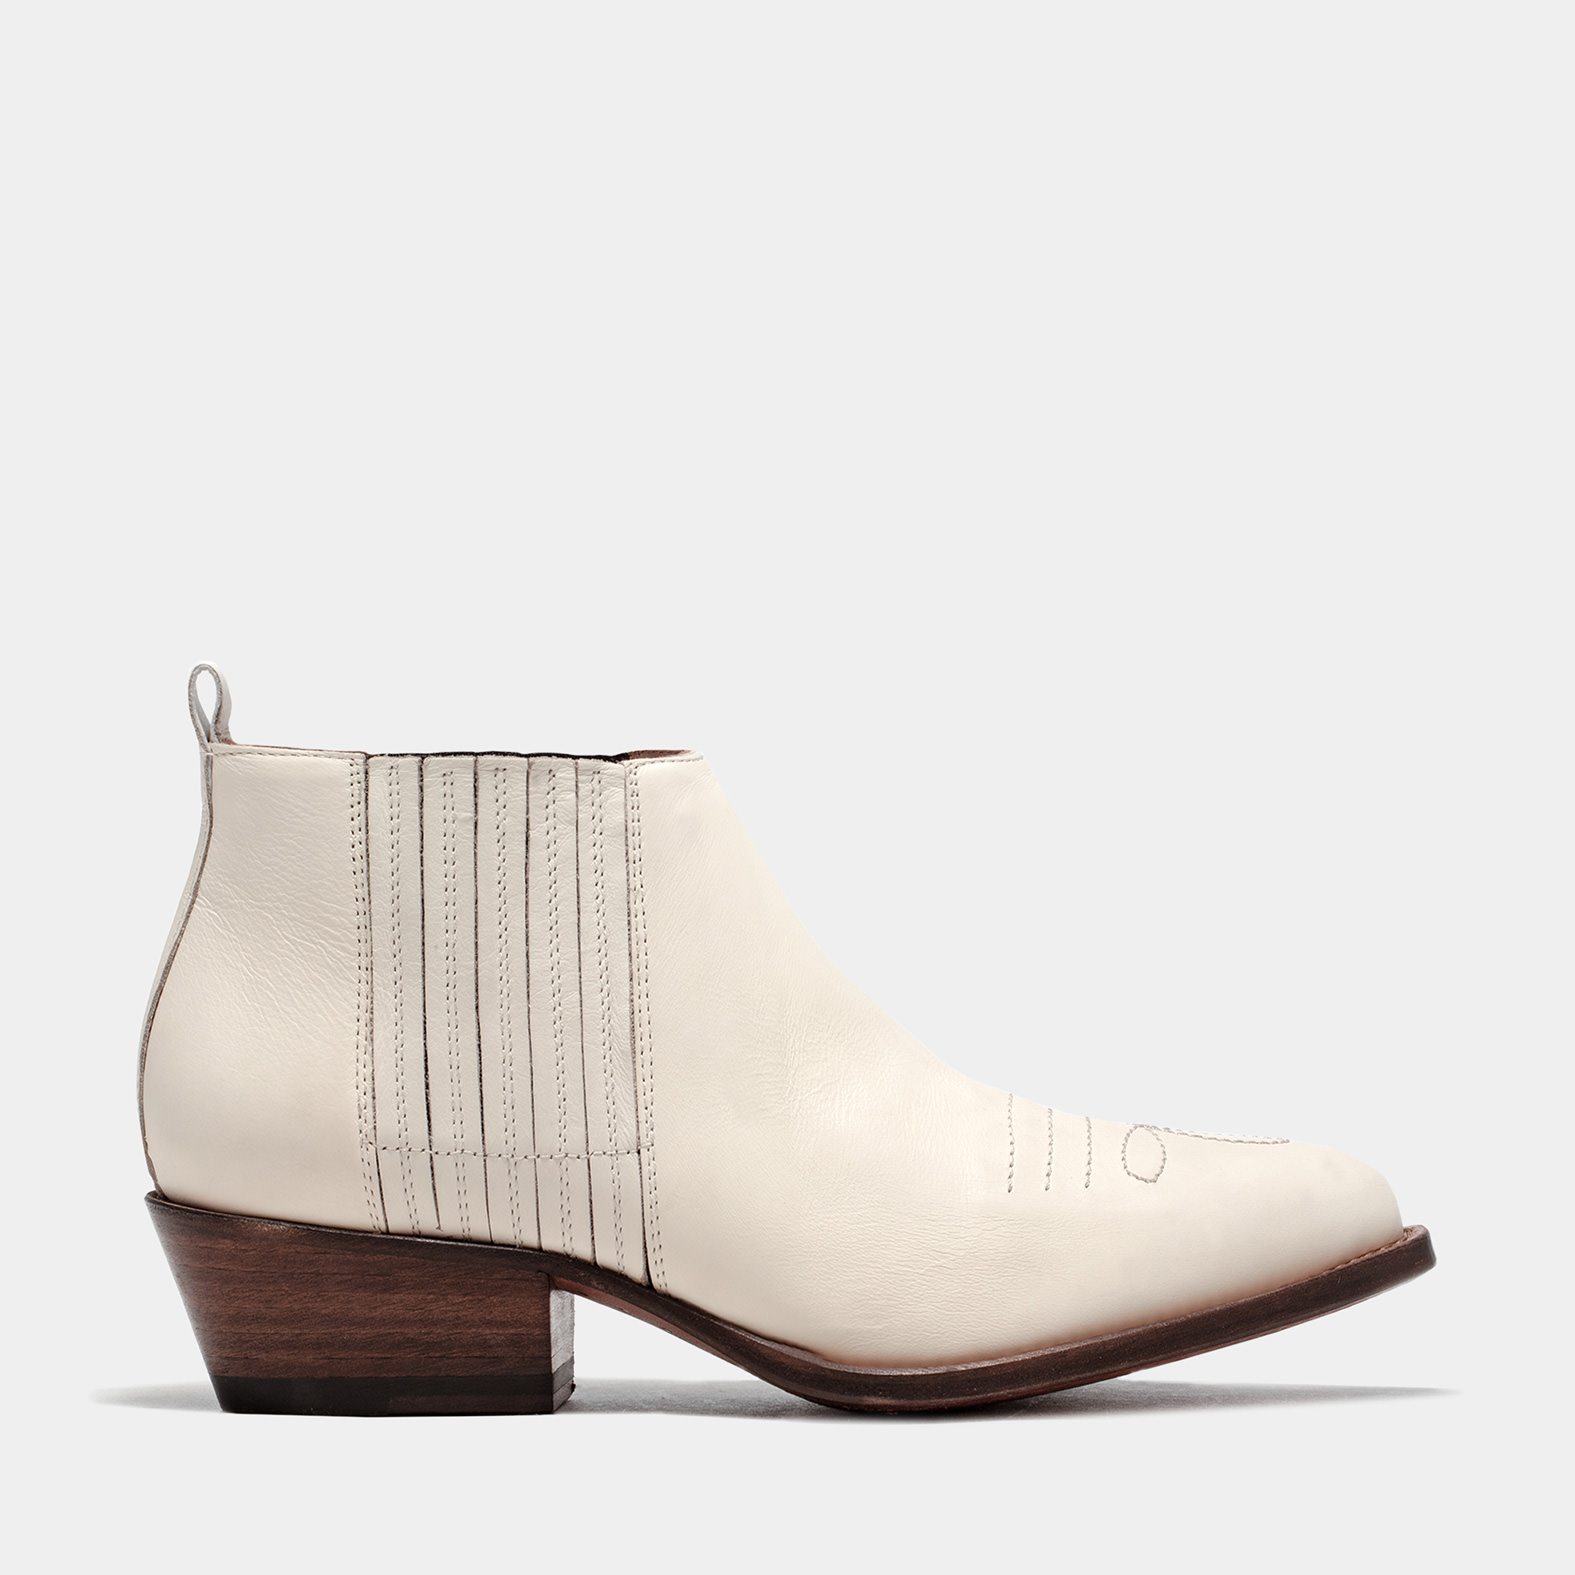 BUTTERO: CREAM LEATHER TRES LOW TOP DURANGO BOOTS